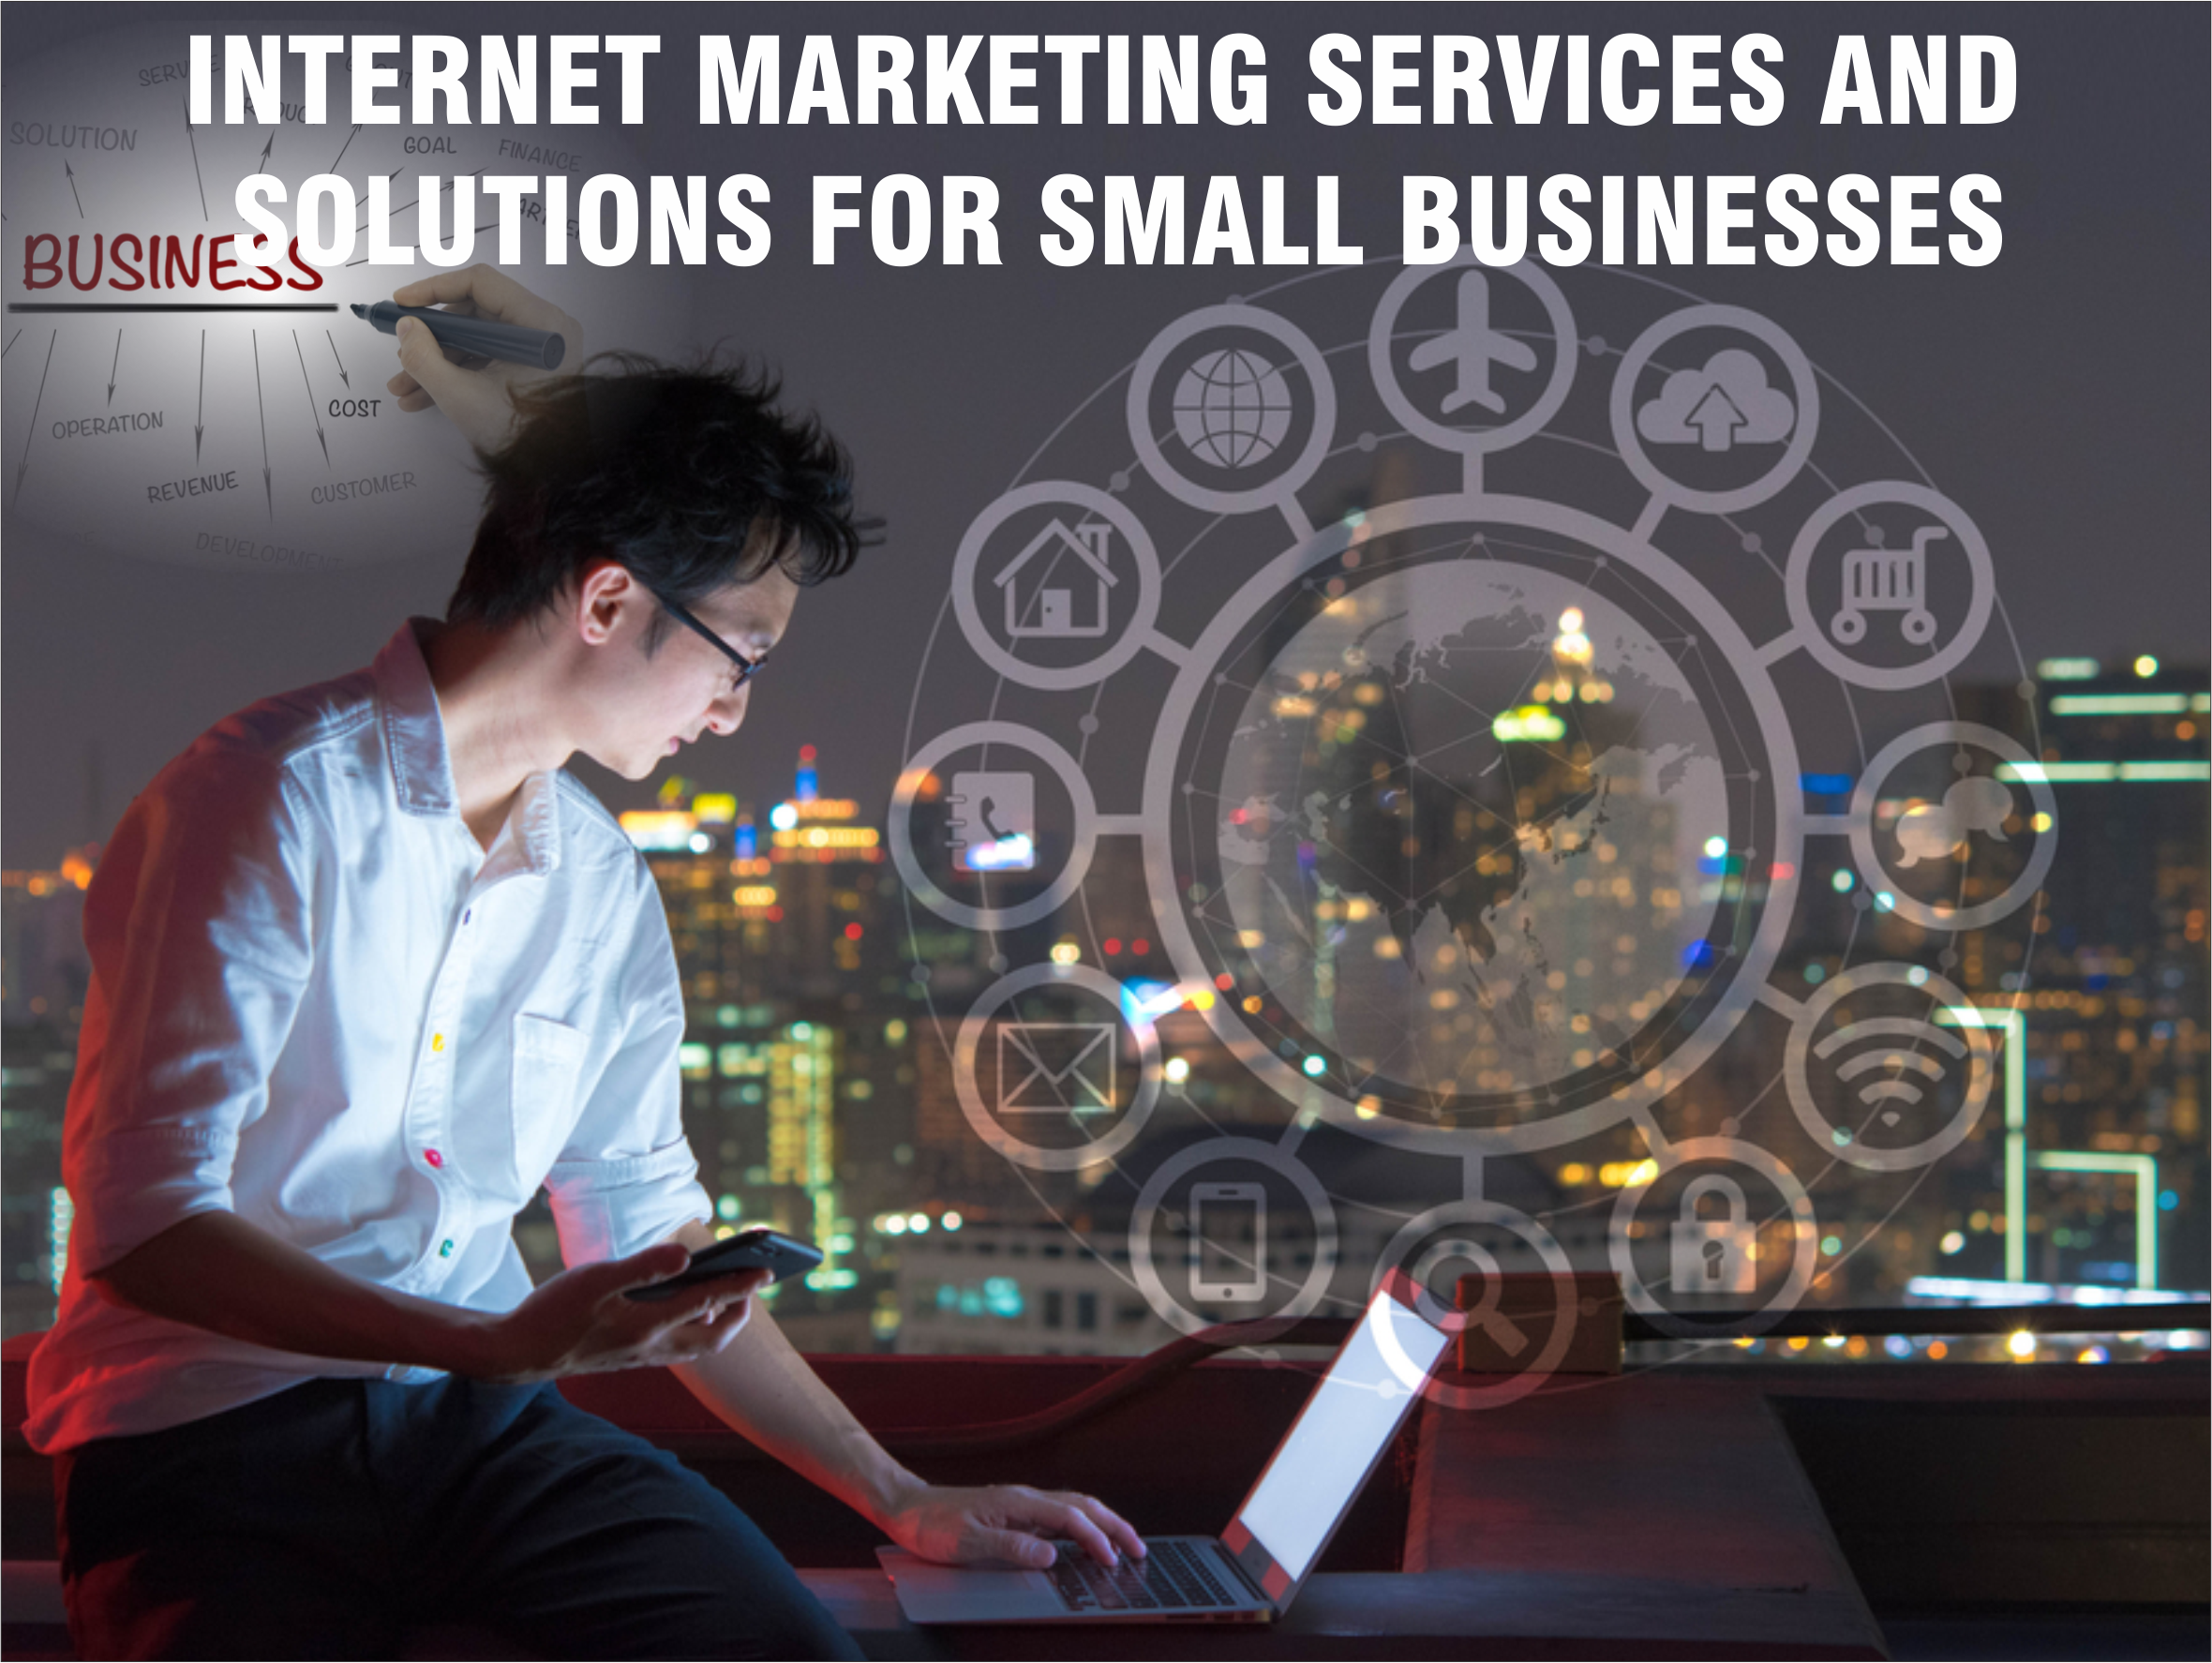 Internet Marketing Services and Solutions for Small Businesses